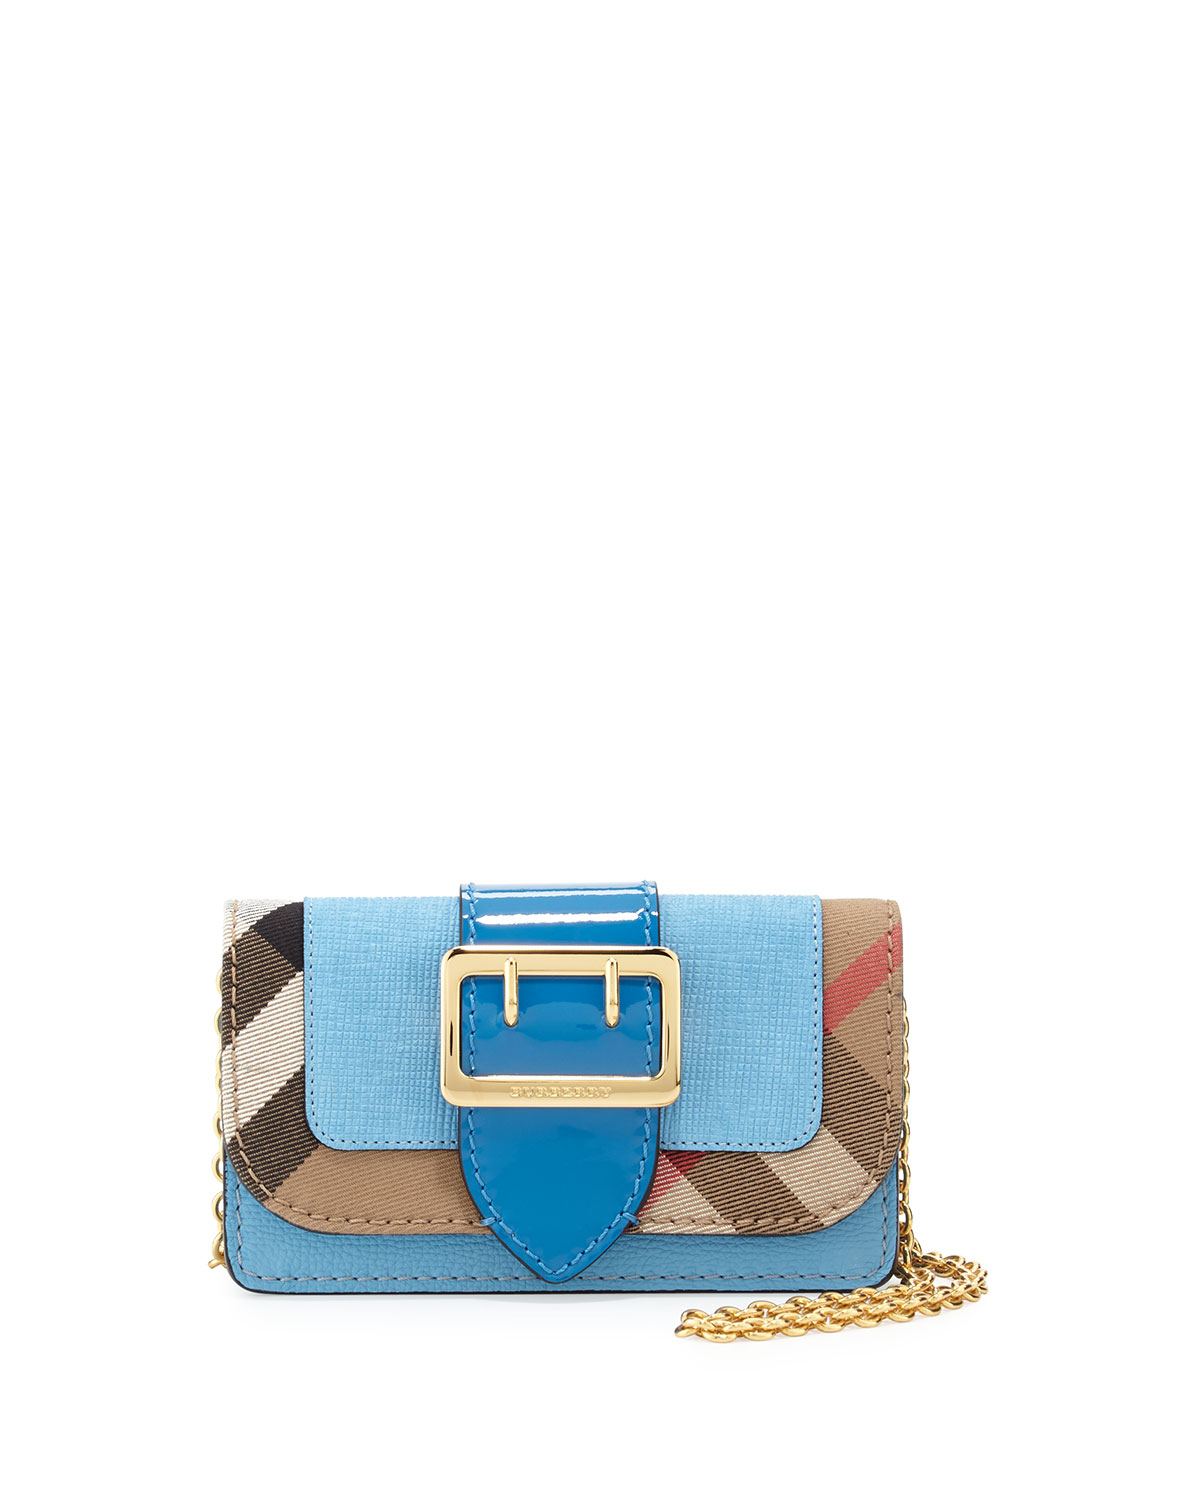 dbd76e9644 Burberry Buckle Mini Leather & House Check Bag, Bright Mineral Blue ...